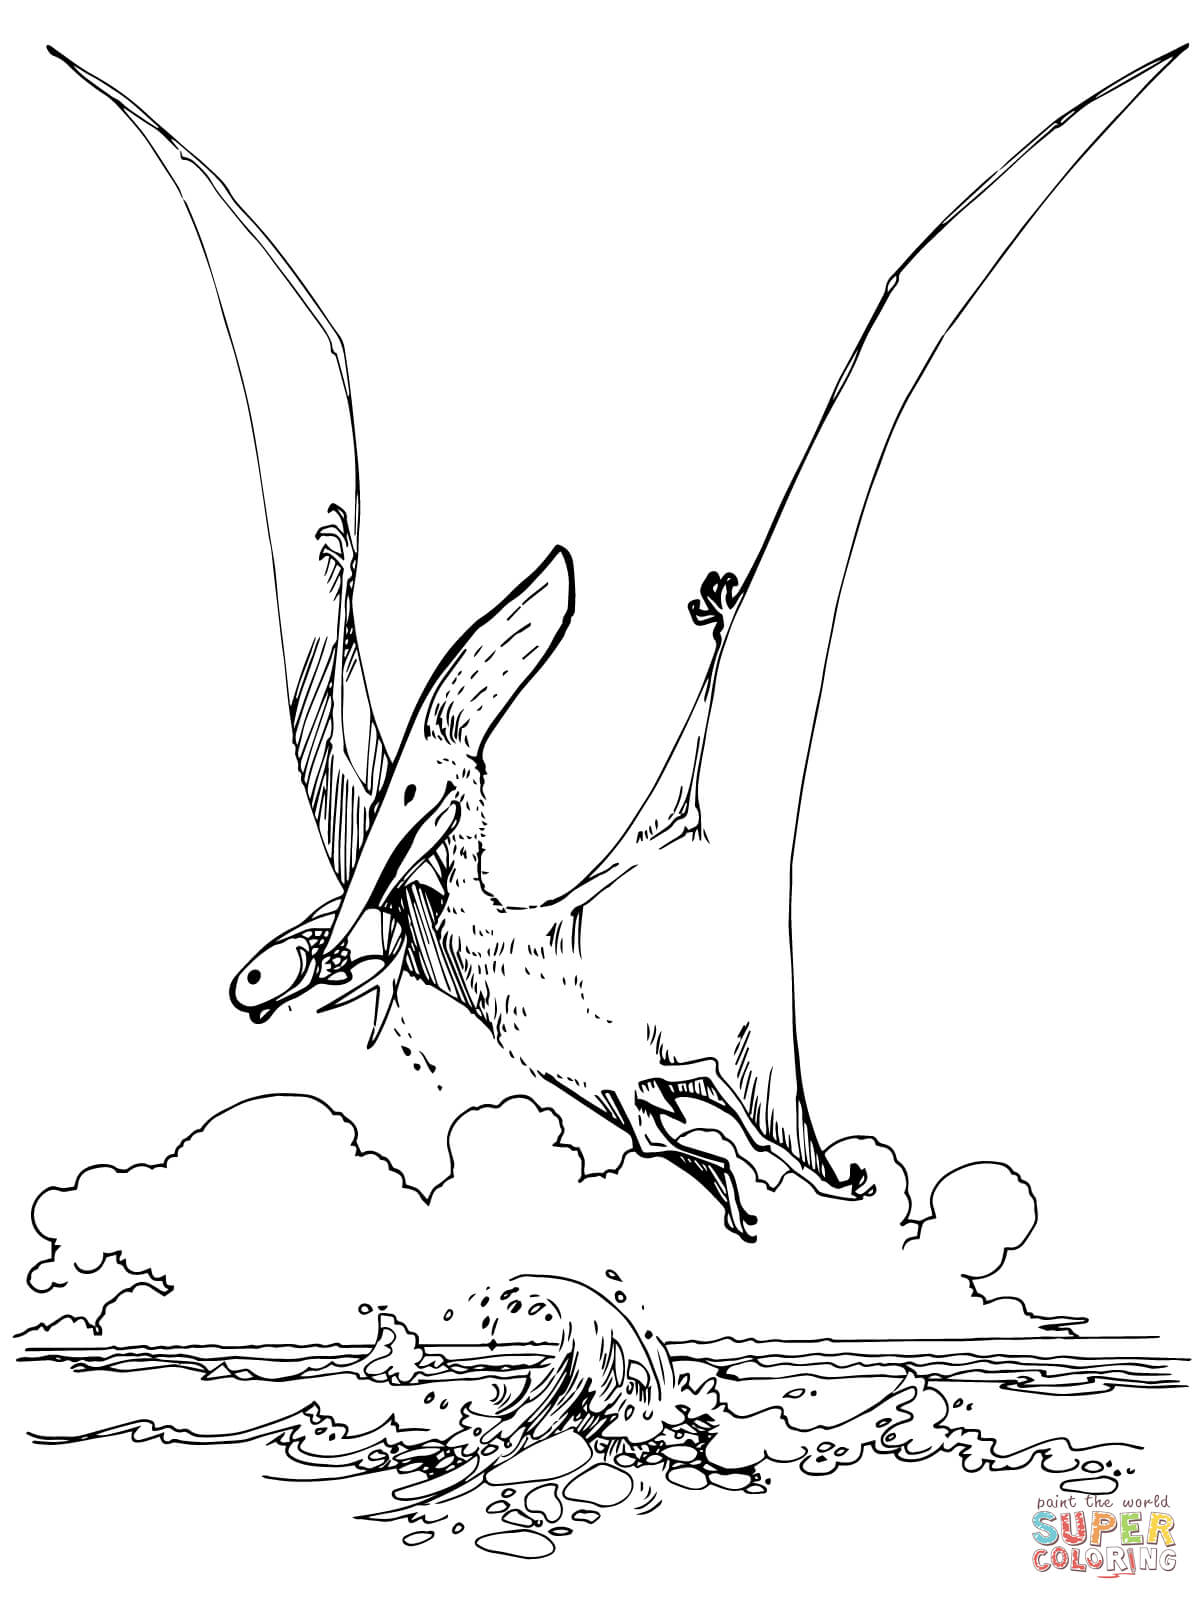 flying dinosaur coloring pages pterodactyl coloring page coloringnori coloring pages coloring dinosaur pages flying